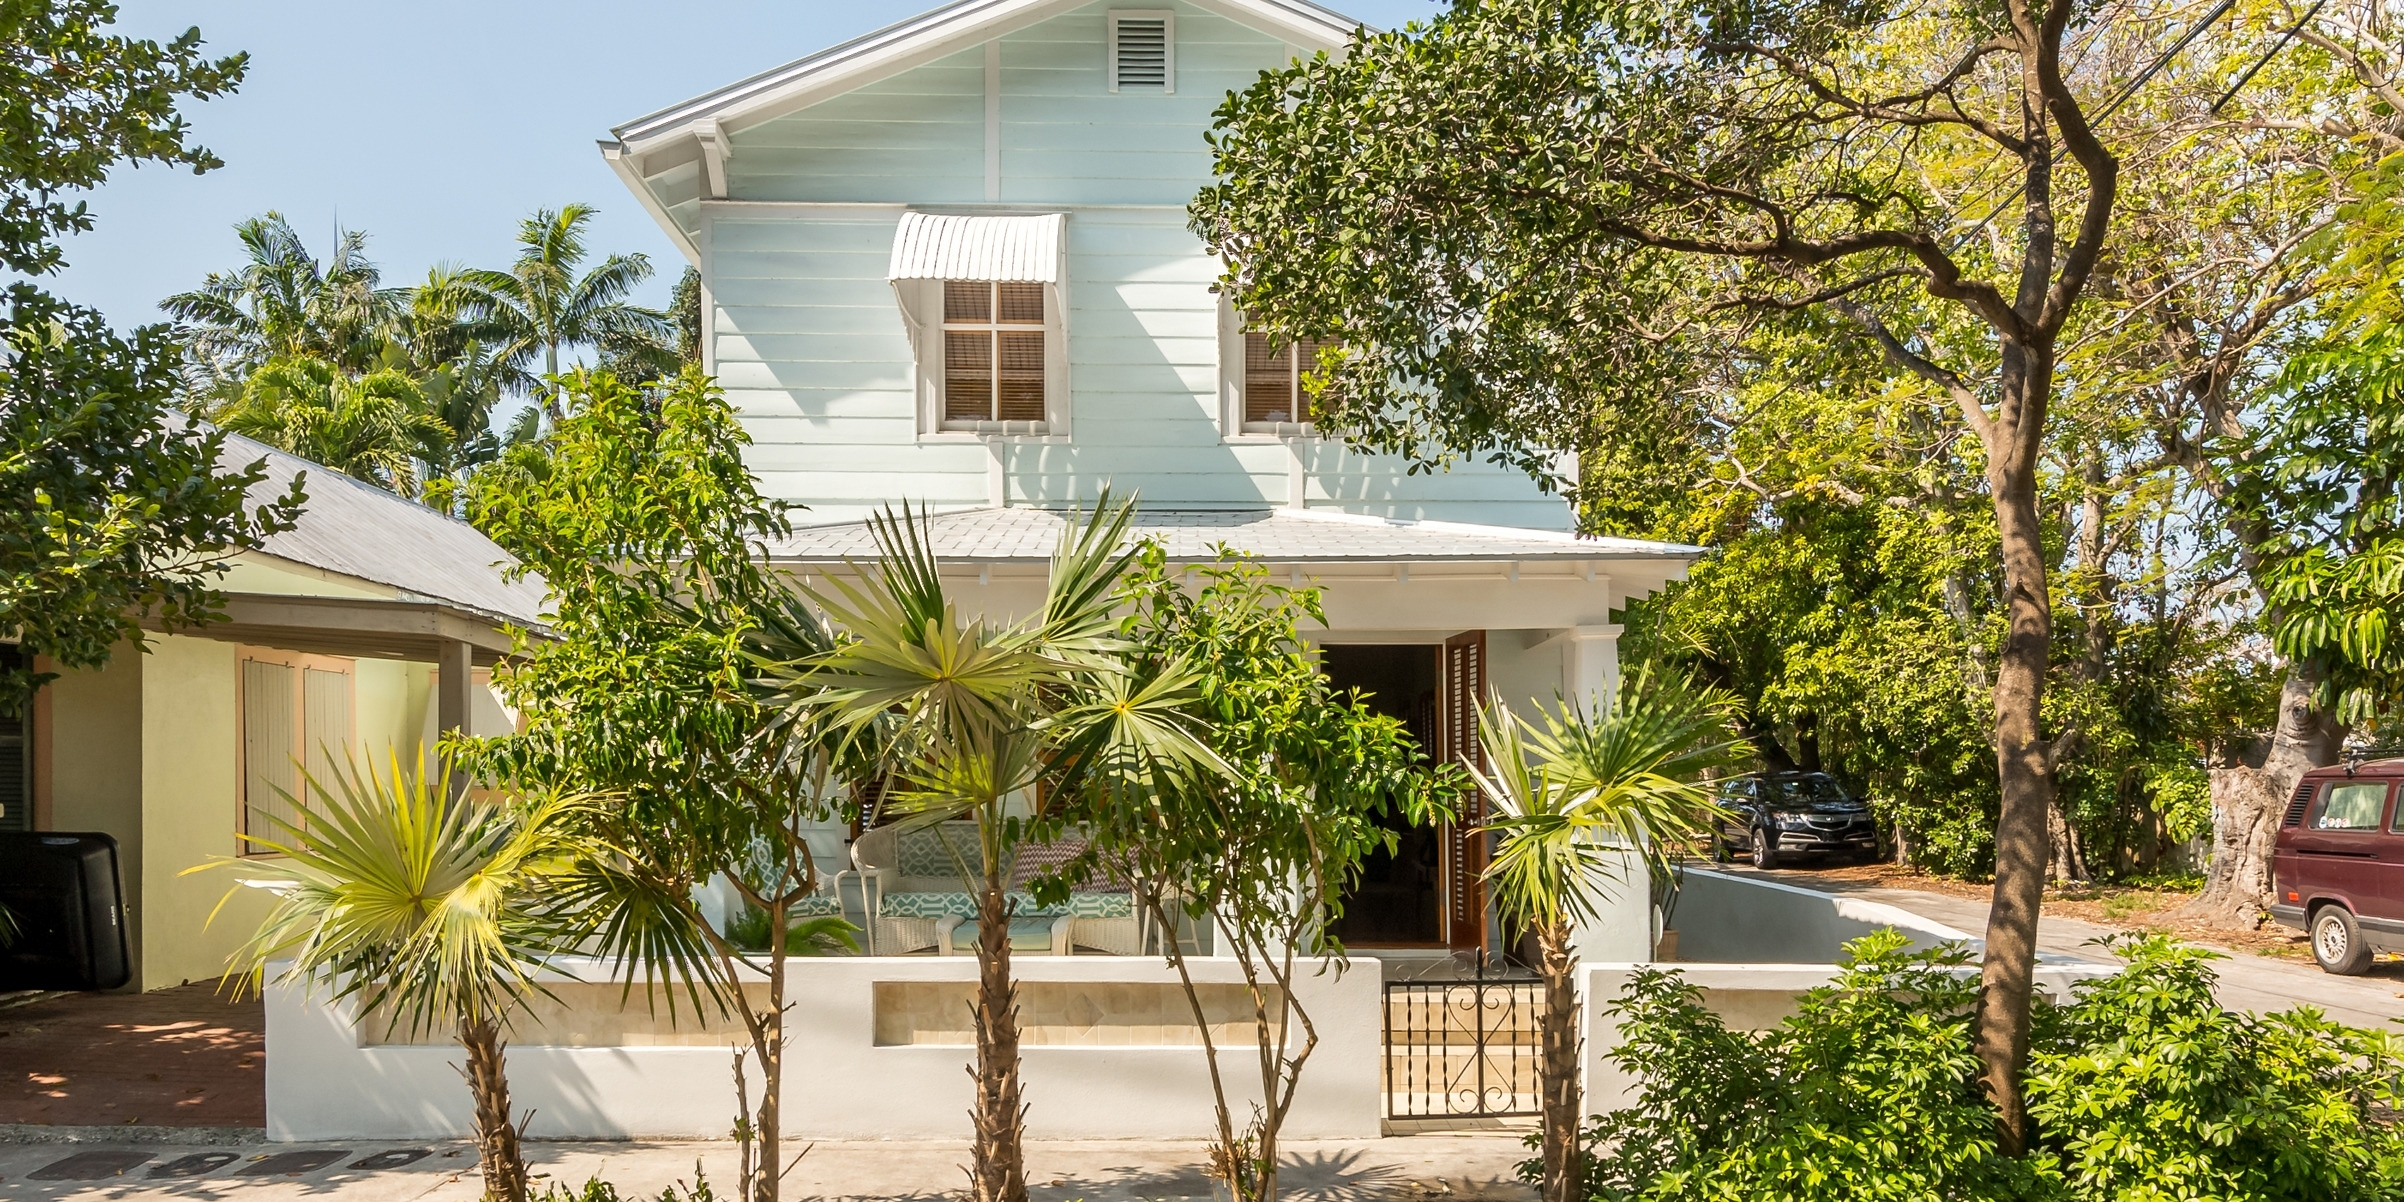 Garden House Bed And Breakfast Key West - Home Design Ideas for Garden House Bed And Breakfast Key West Fl